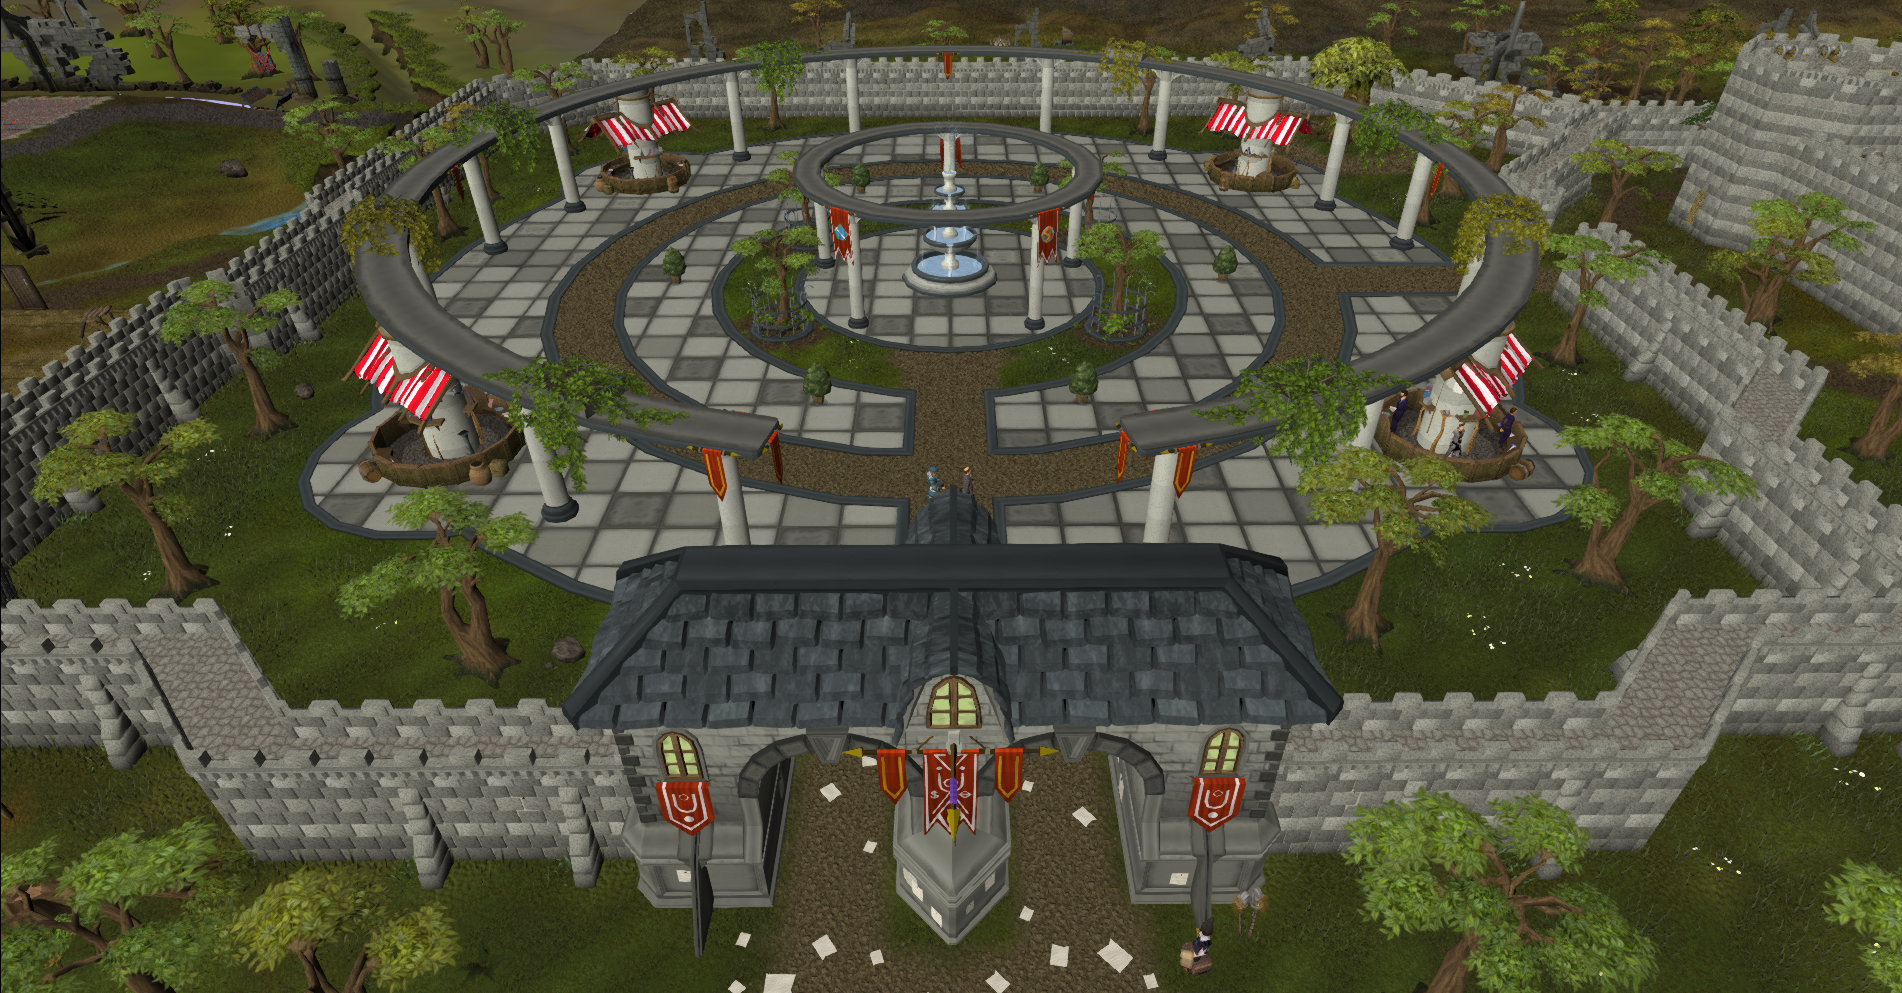 Pin by James Cornwell on Grand exchange Level design